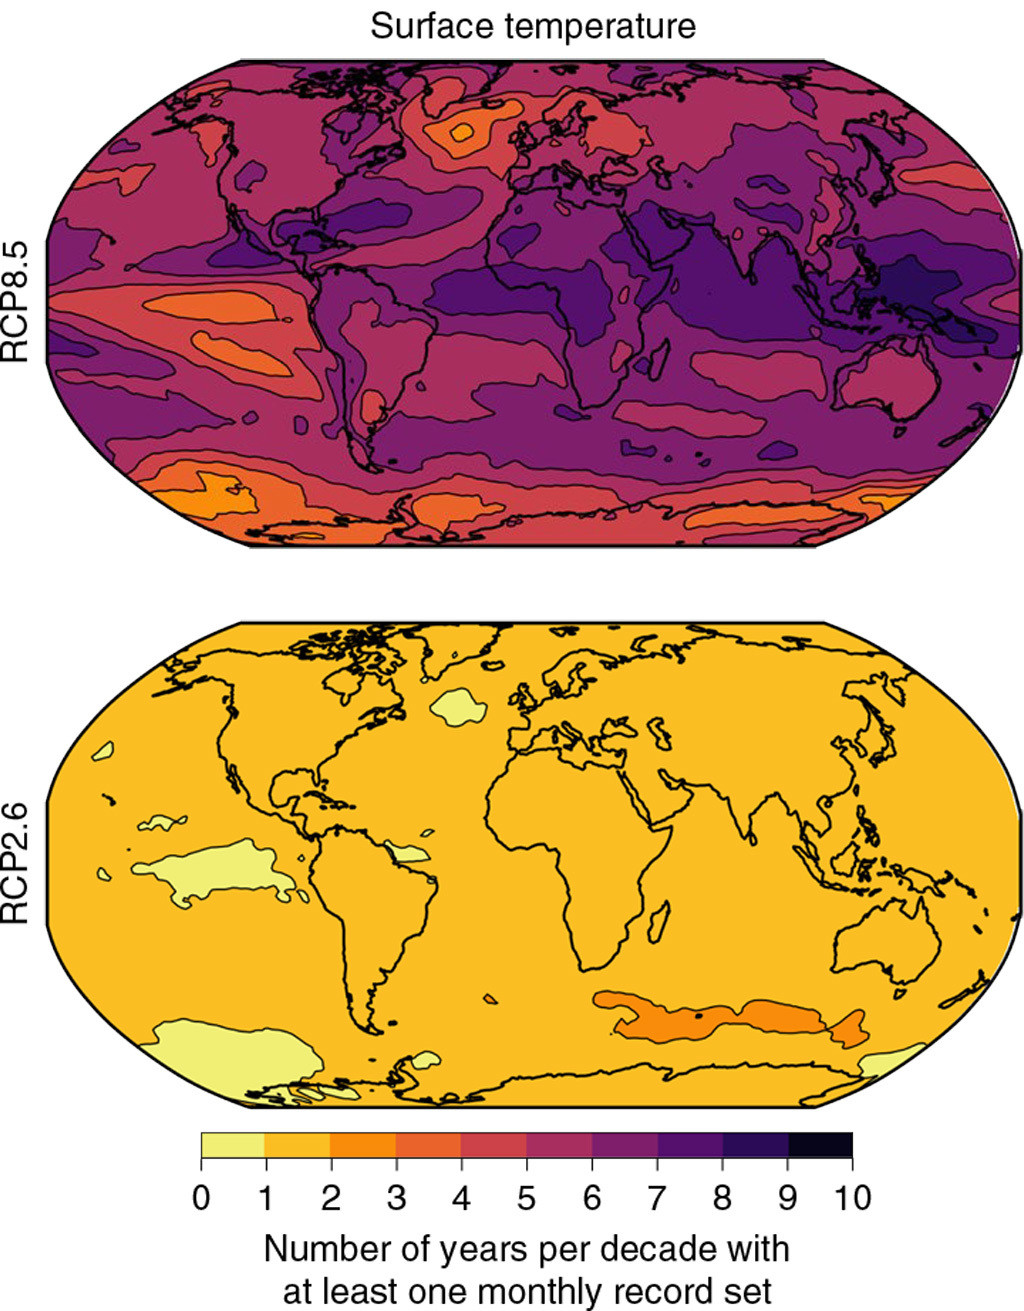 Maps indicating the number of years per decade where new temperature records are set in at least one month in the future period of 2070-99 under a high emissions scenario (top) and a scenario where warming is limited to below 2C (bottom).